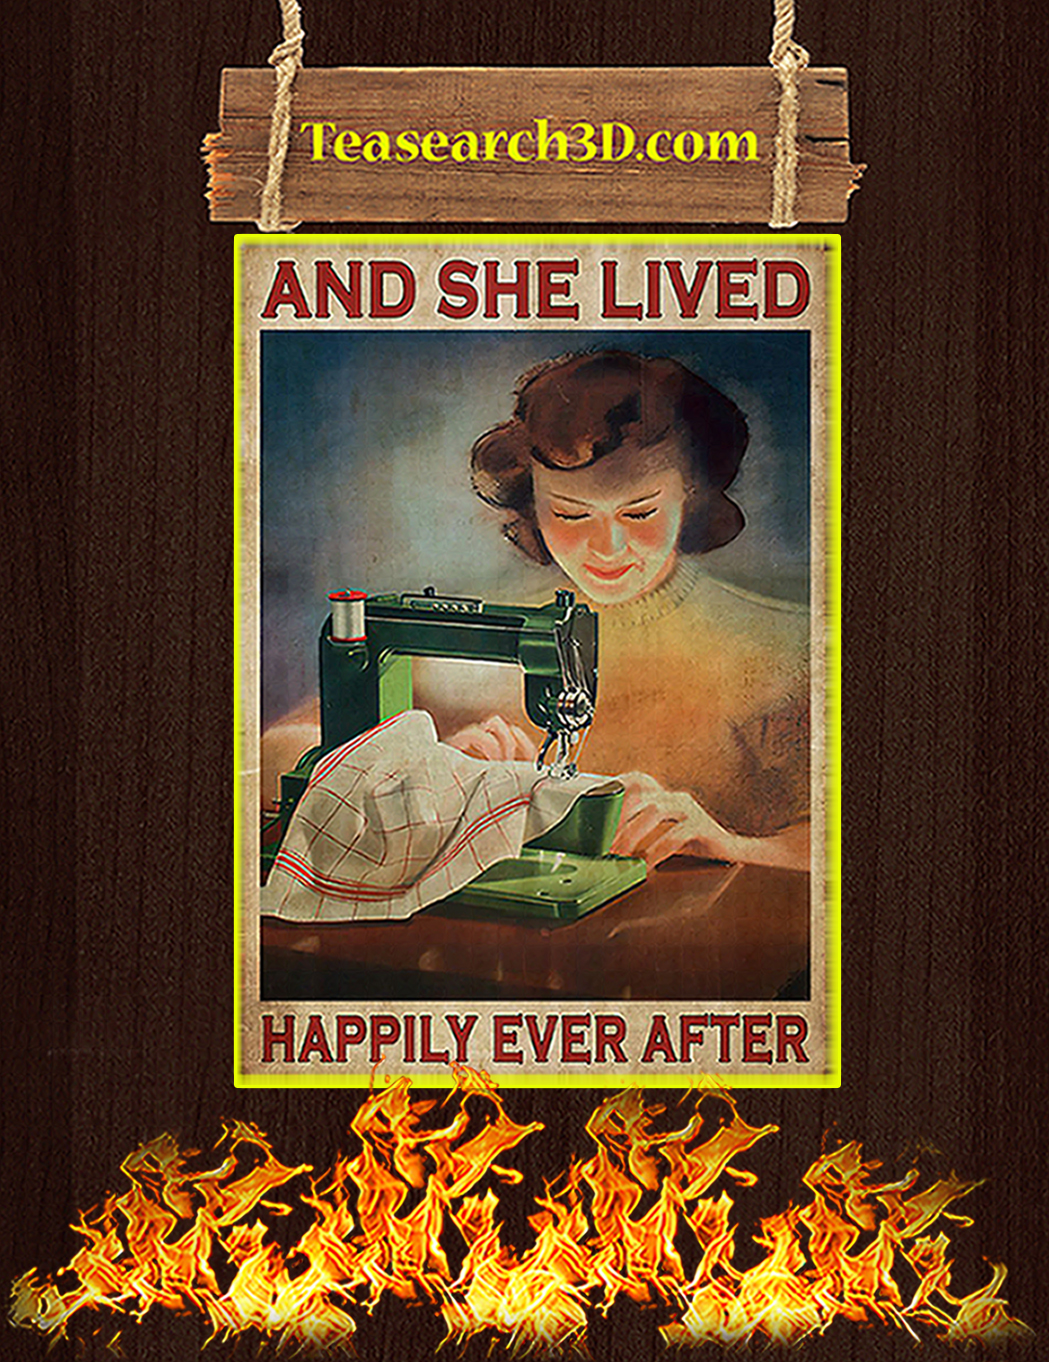 Girl sewing and she lived happily ever after poster A1